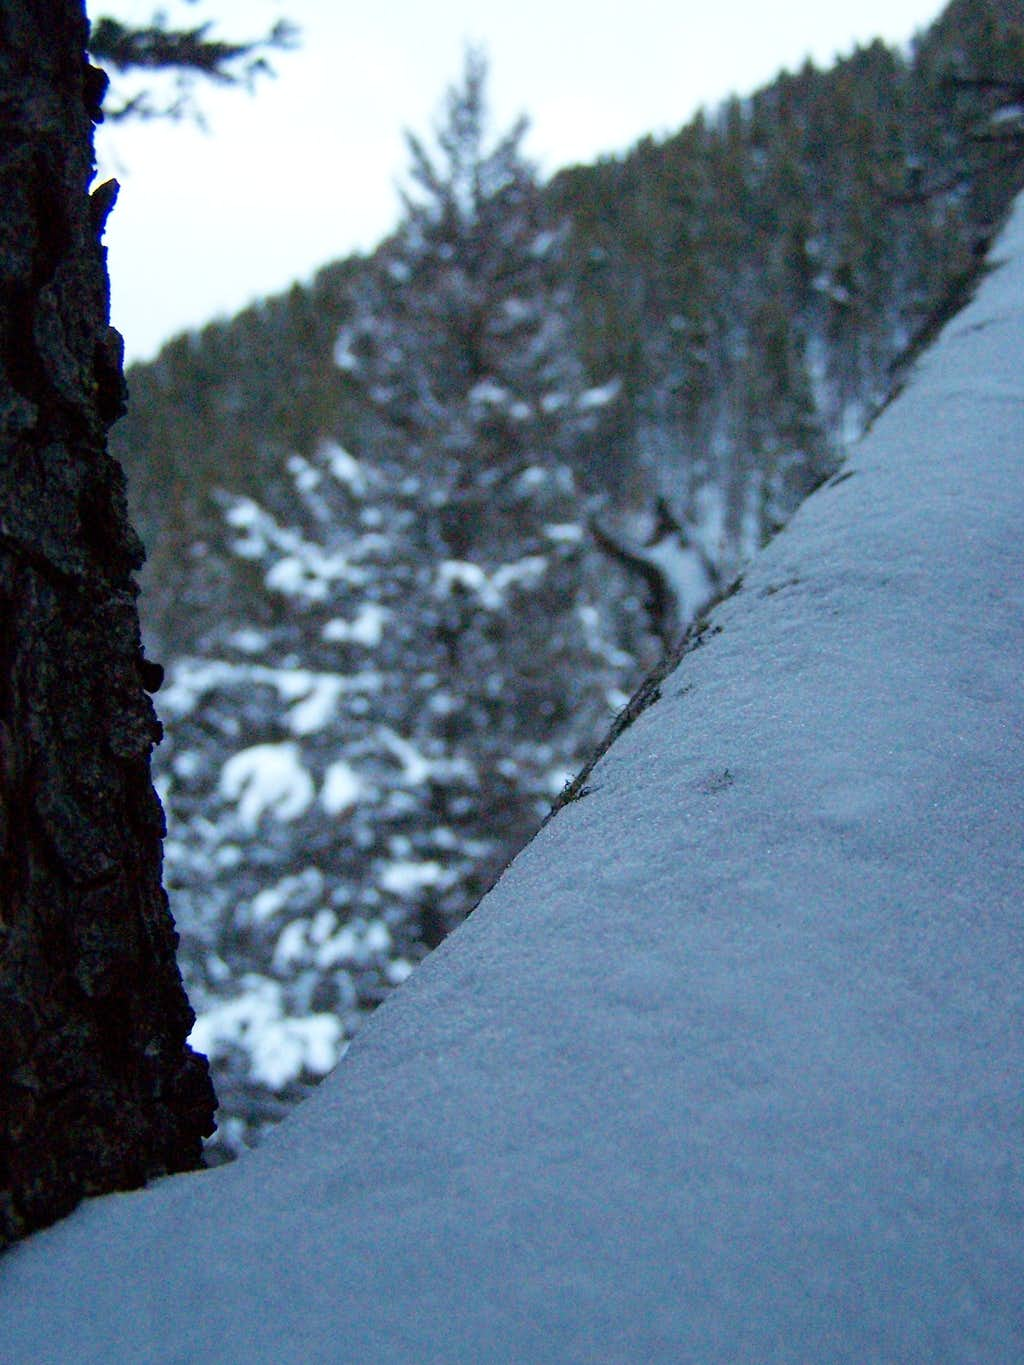 Hyalite Snowfall, and the thick forests